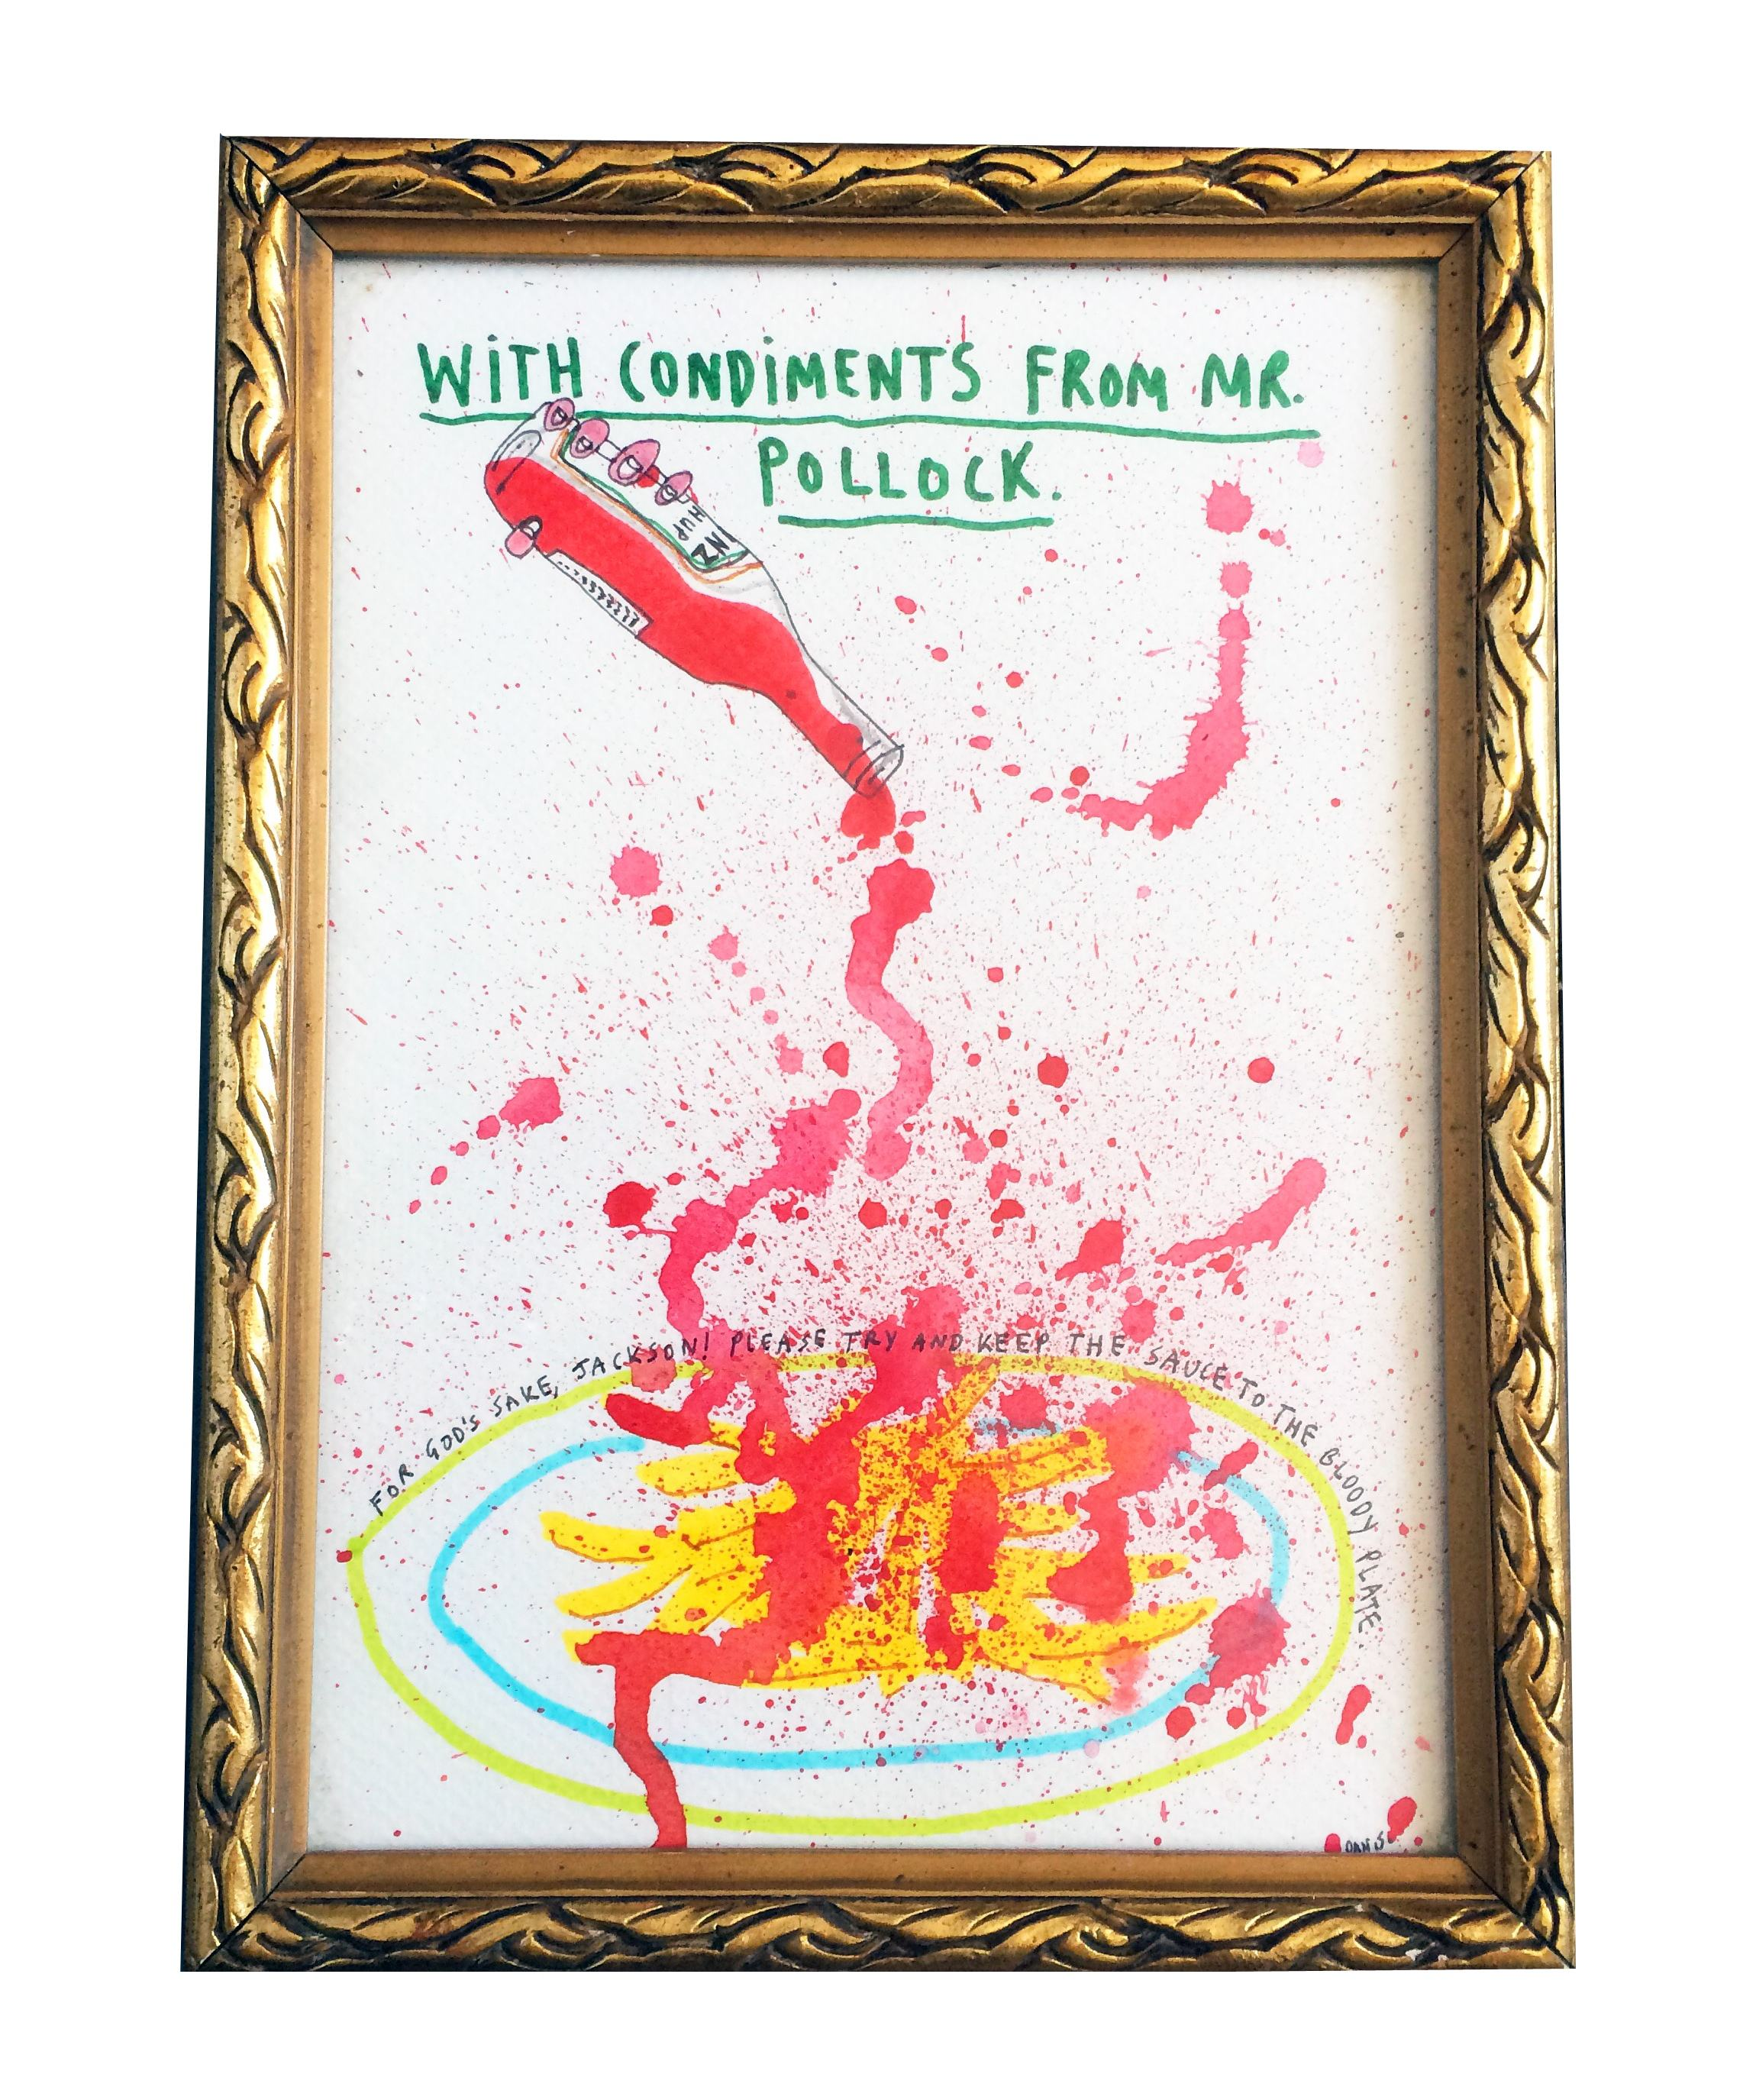 With condiments from Mr. Pollock. (For God's sake, Jackon! Please try and ke